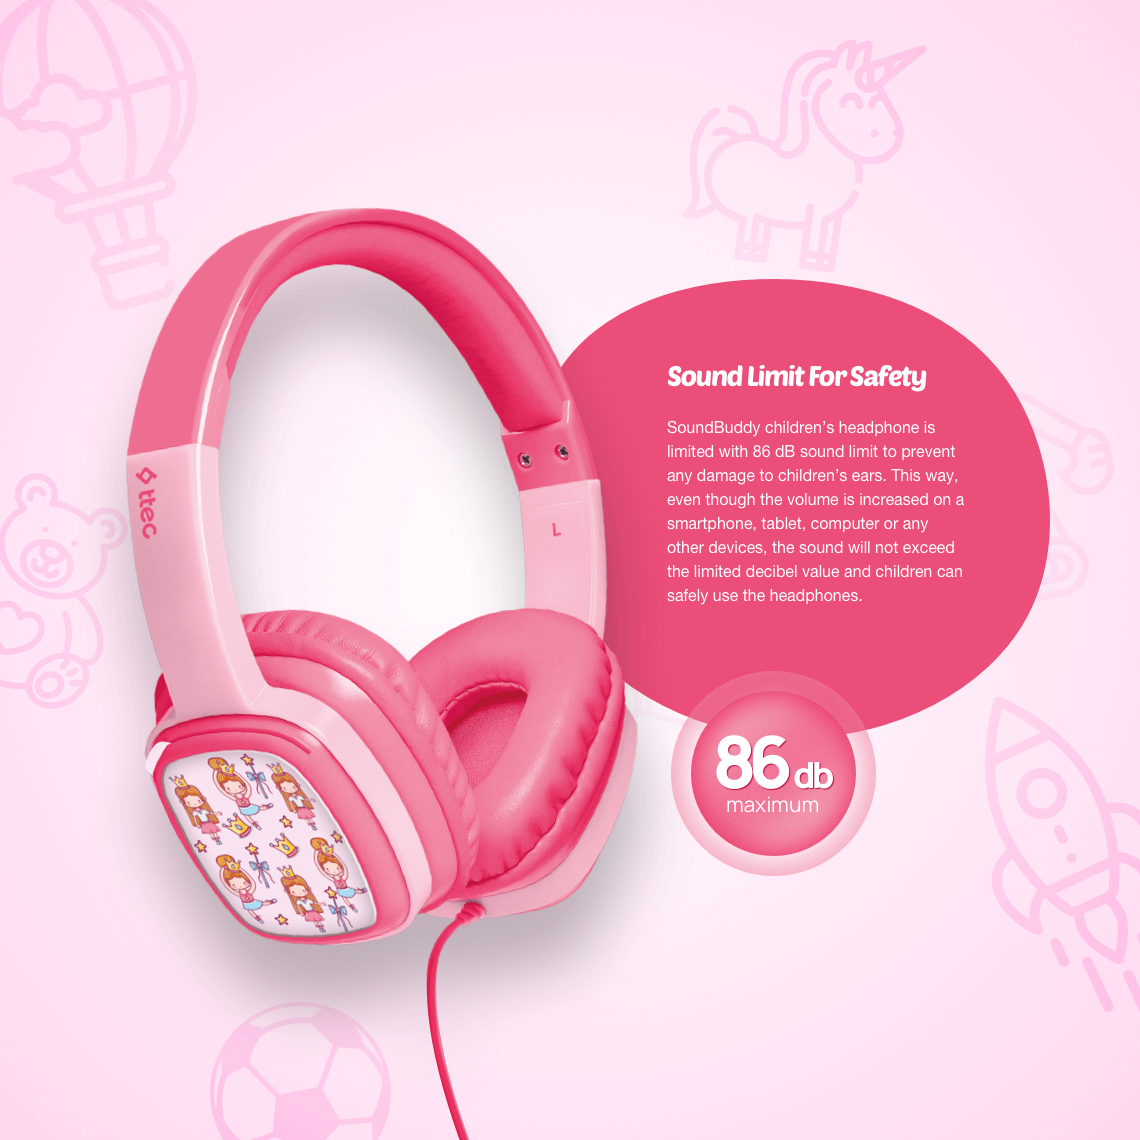 SoundBuddy children's headphone is limited with 86 dB sound limit to prevent any damage to children's ears. This way, even though the volume is increased on a smartphone, tablet, computer or any other devices, the sound will not exceed the limited decibel value and children can safely use the headphones.